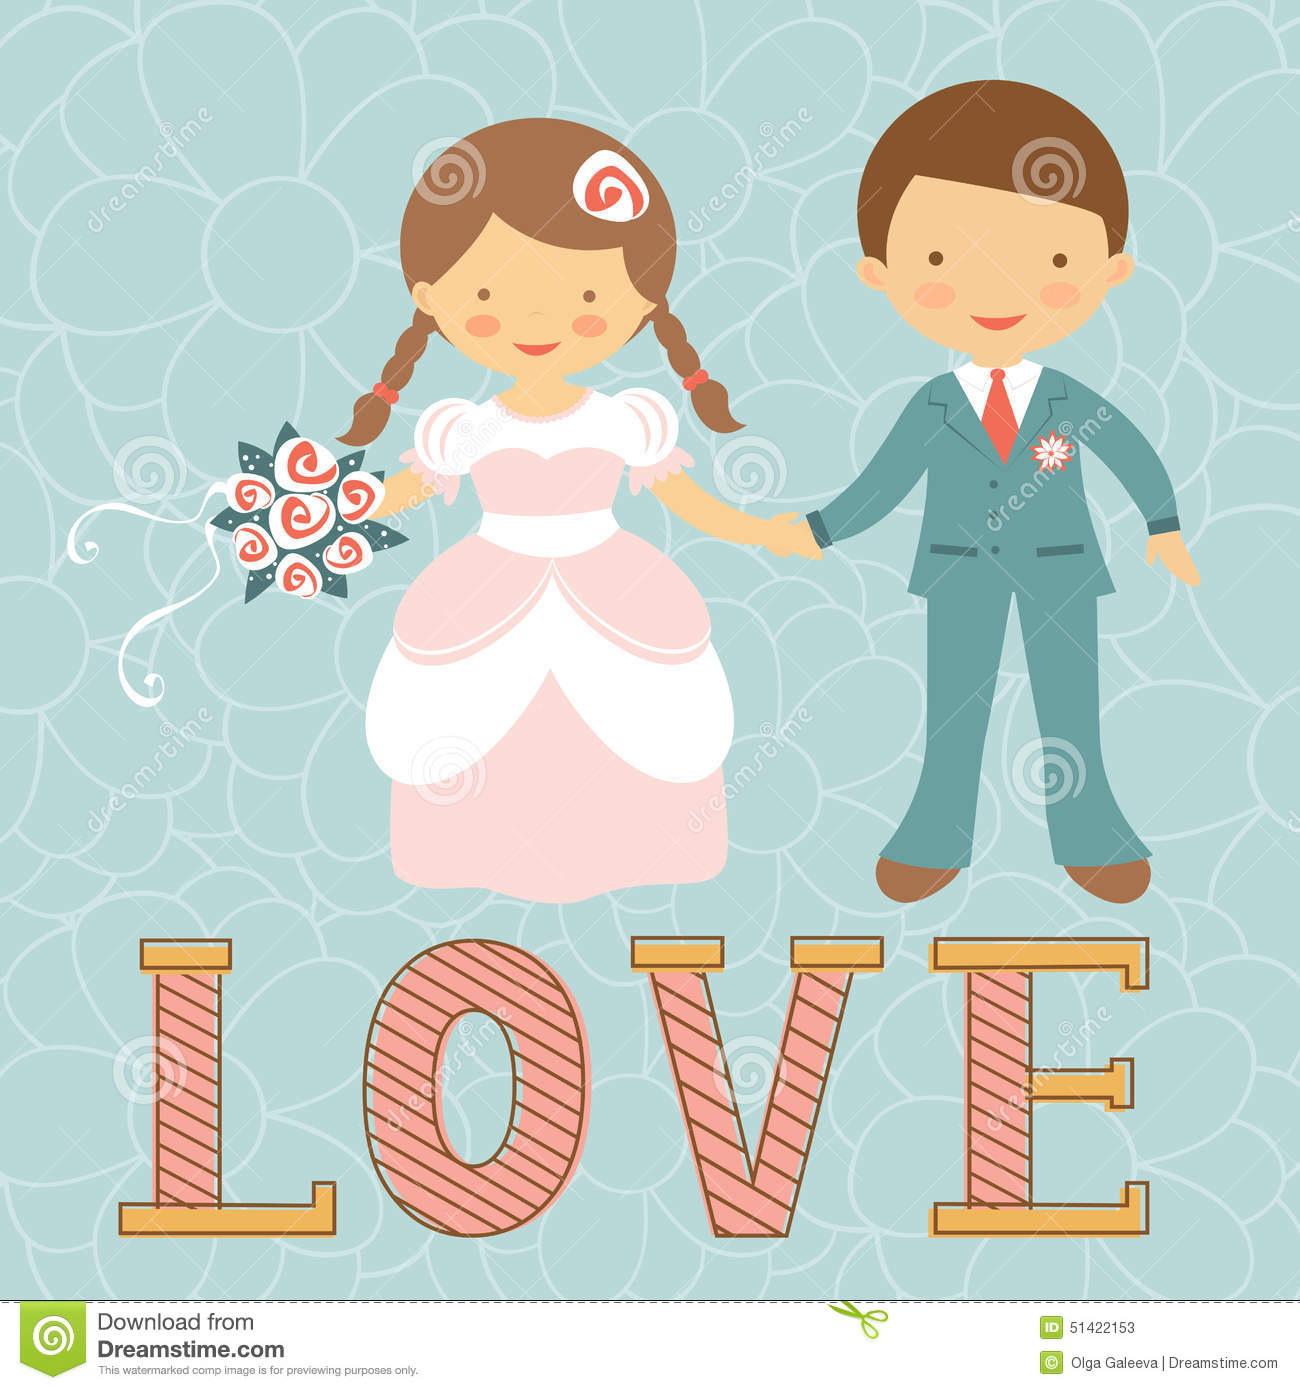 Cute Wedding Couple Stock Vector - Image: 51422153